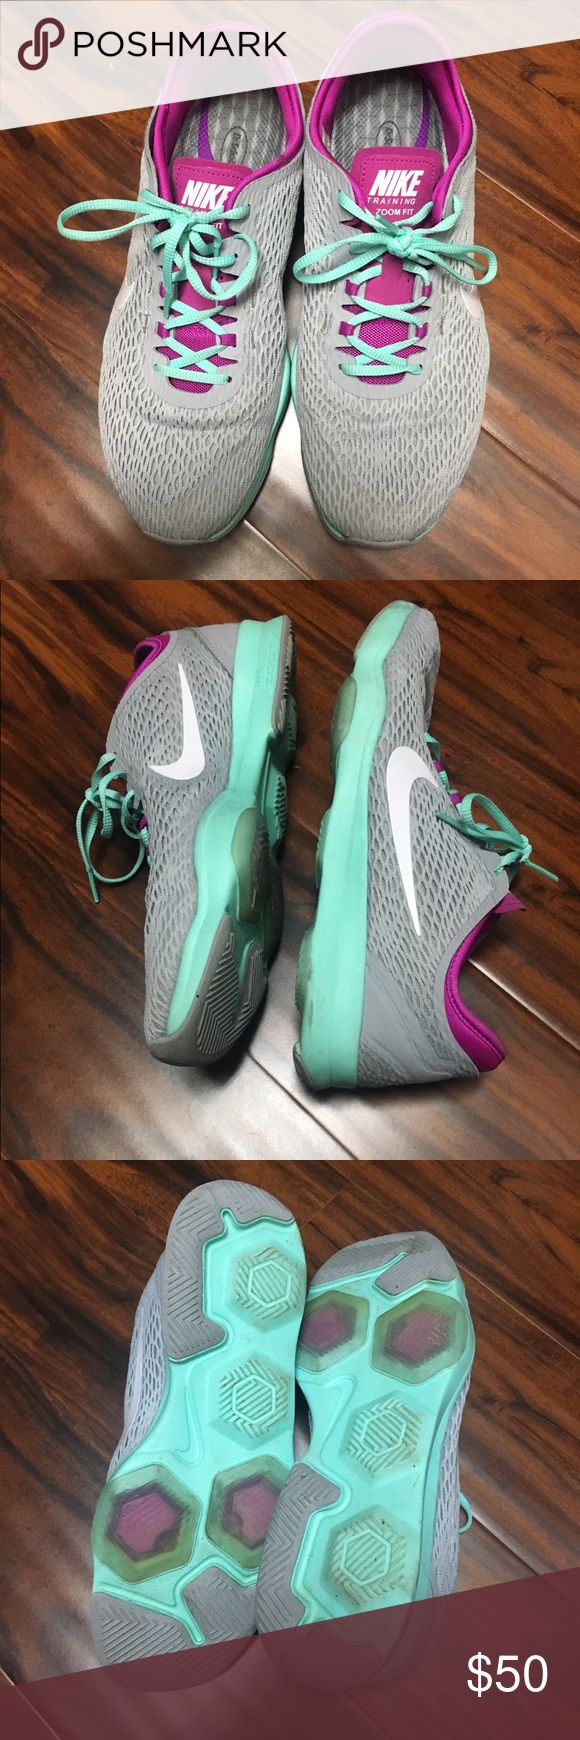 Nike Zoom Fit Cute mint and pink Nike zoom fits that have been worn two or three times. In great condition. New insoles put in for more arch support. Nike Shoes Athletic Shoes